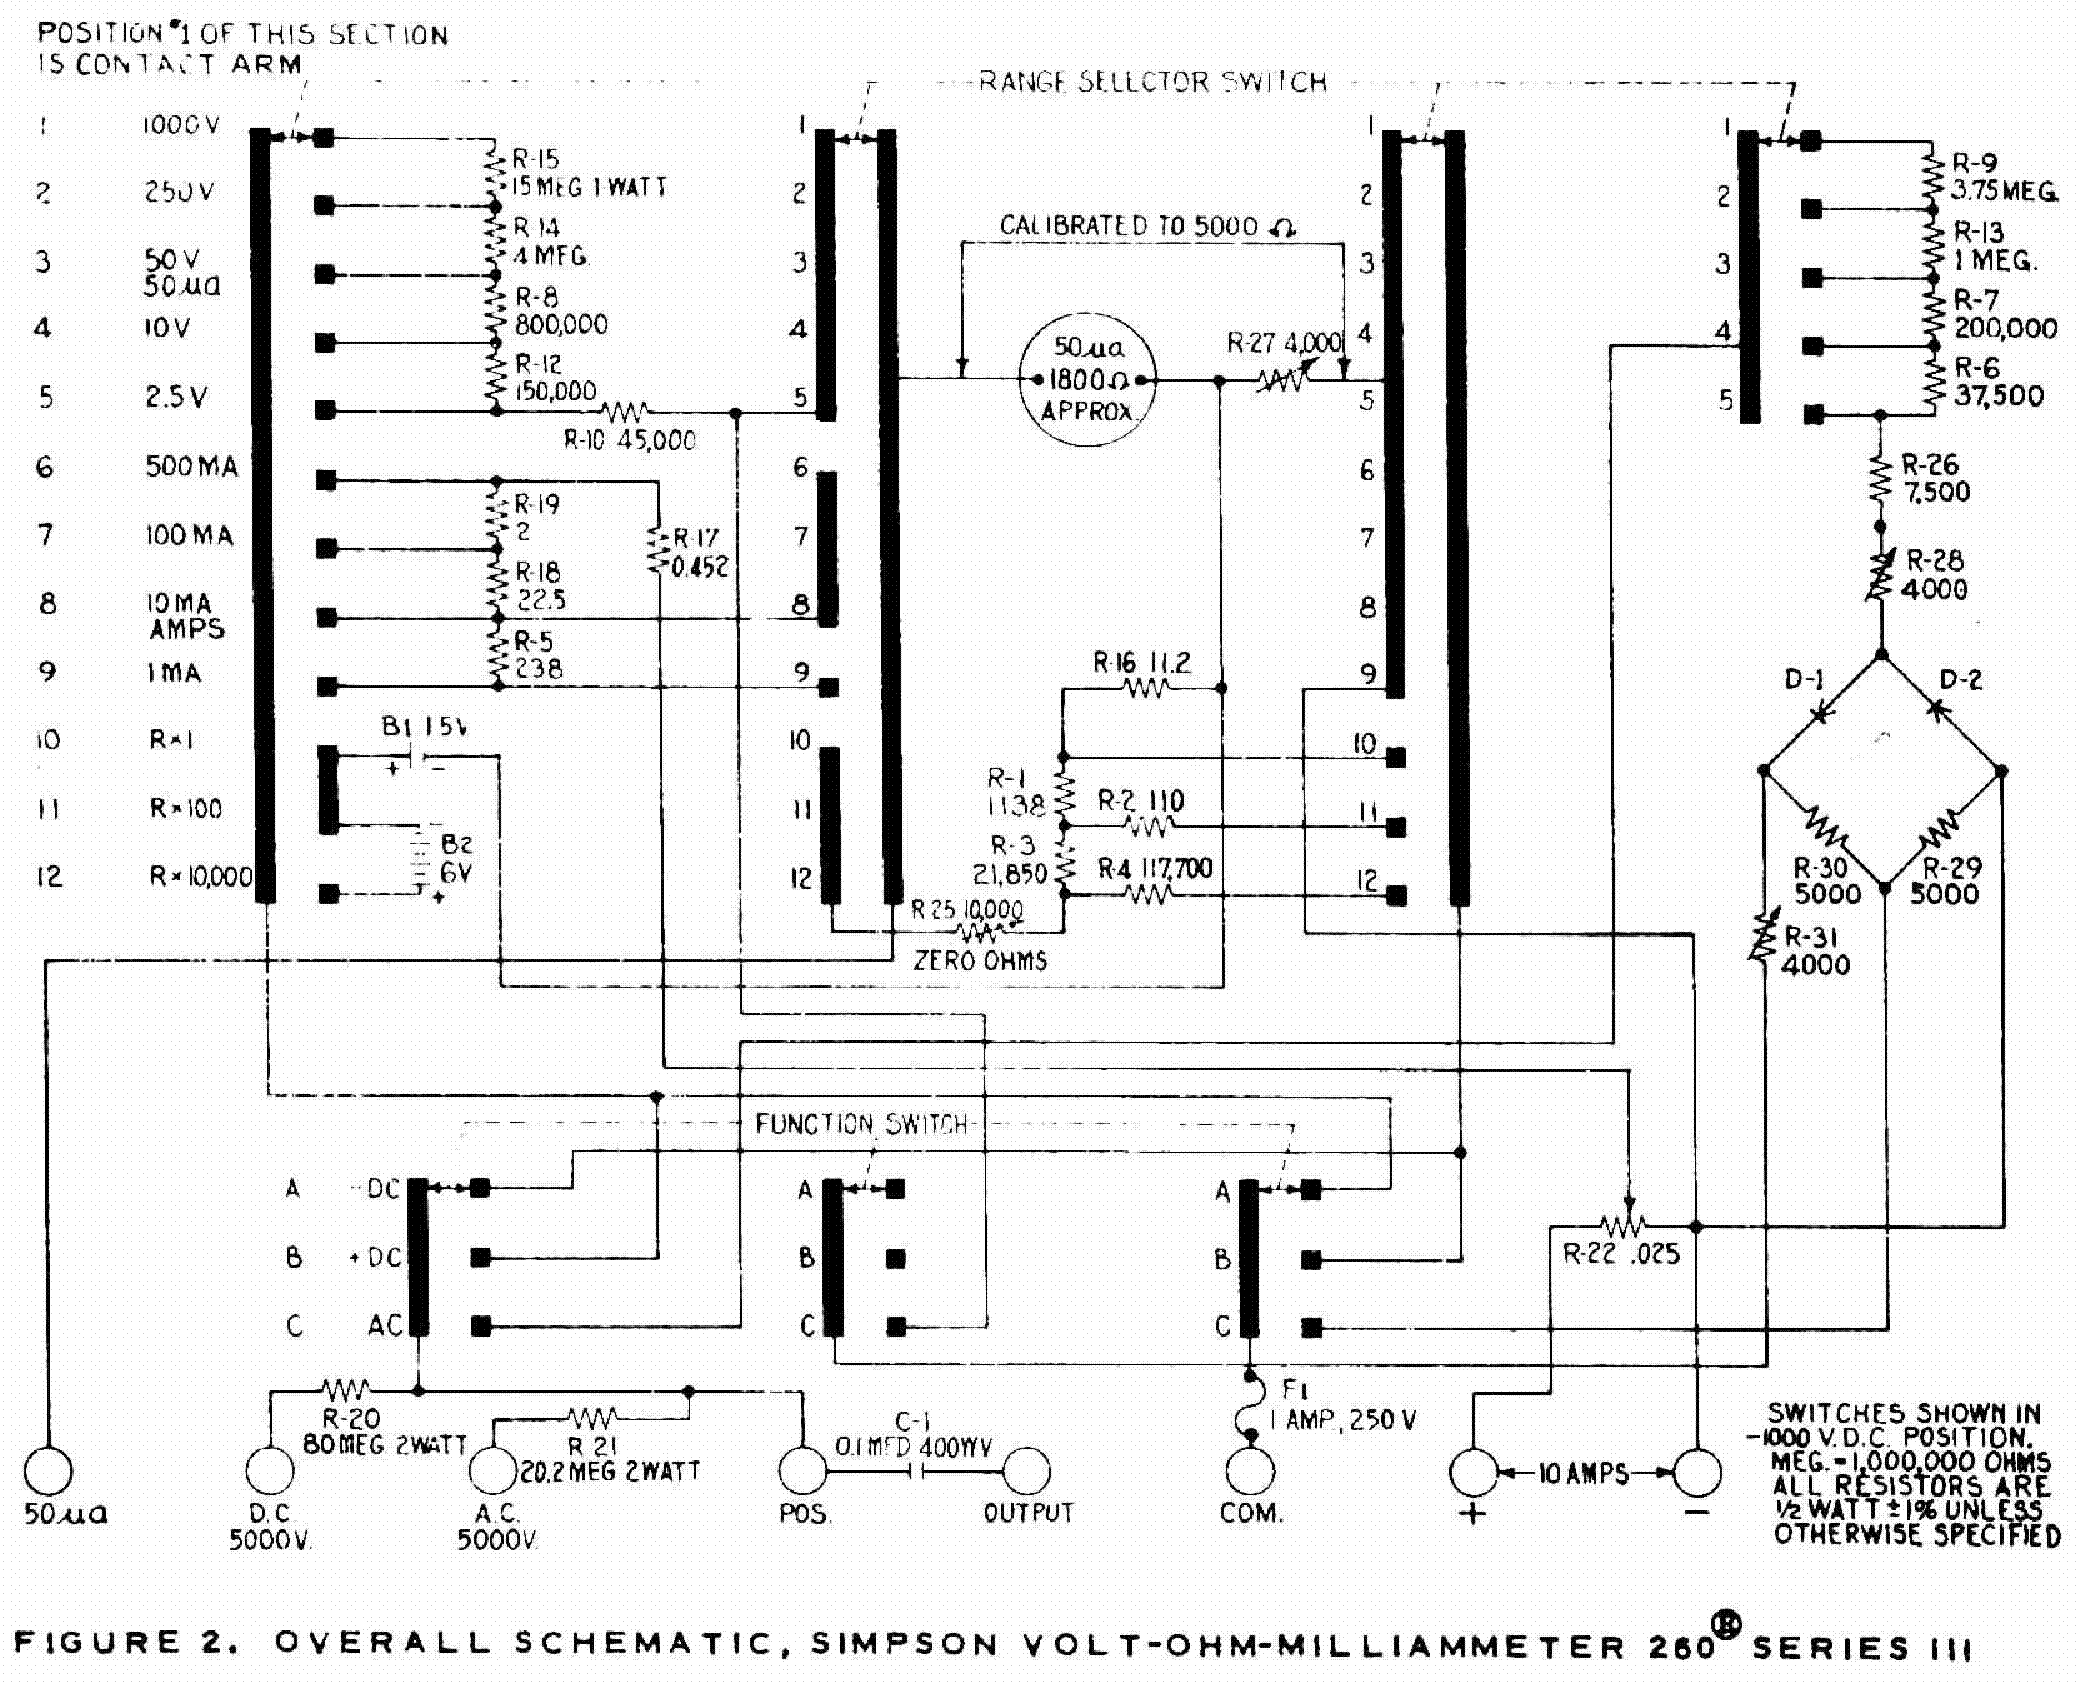 Simpson 260 Sr furthermore Simpson 260 Multimeter Schematic also Simpson 260 Multimeter Schematic besides Model 390 2 Volt   Wattmeter Instruction Manual further Download. on simpson 260 ohm meter schematic